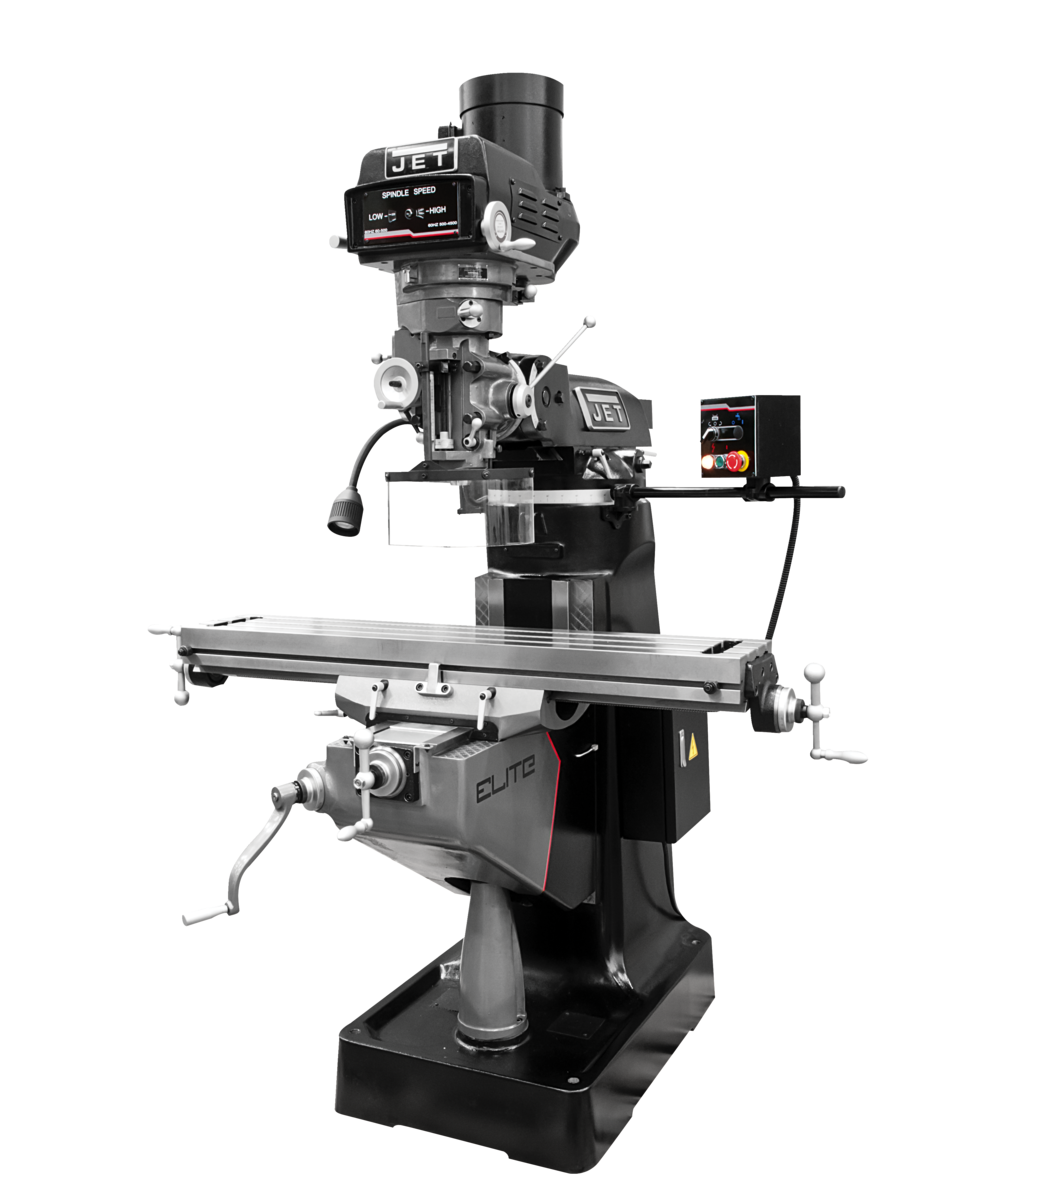 ETM-949 Mill with 3-Axis ACU-RITE 203 (Knee) DRO and Servo X-Axis Powerfeed